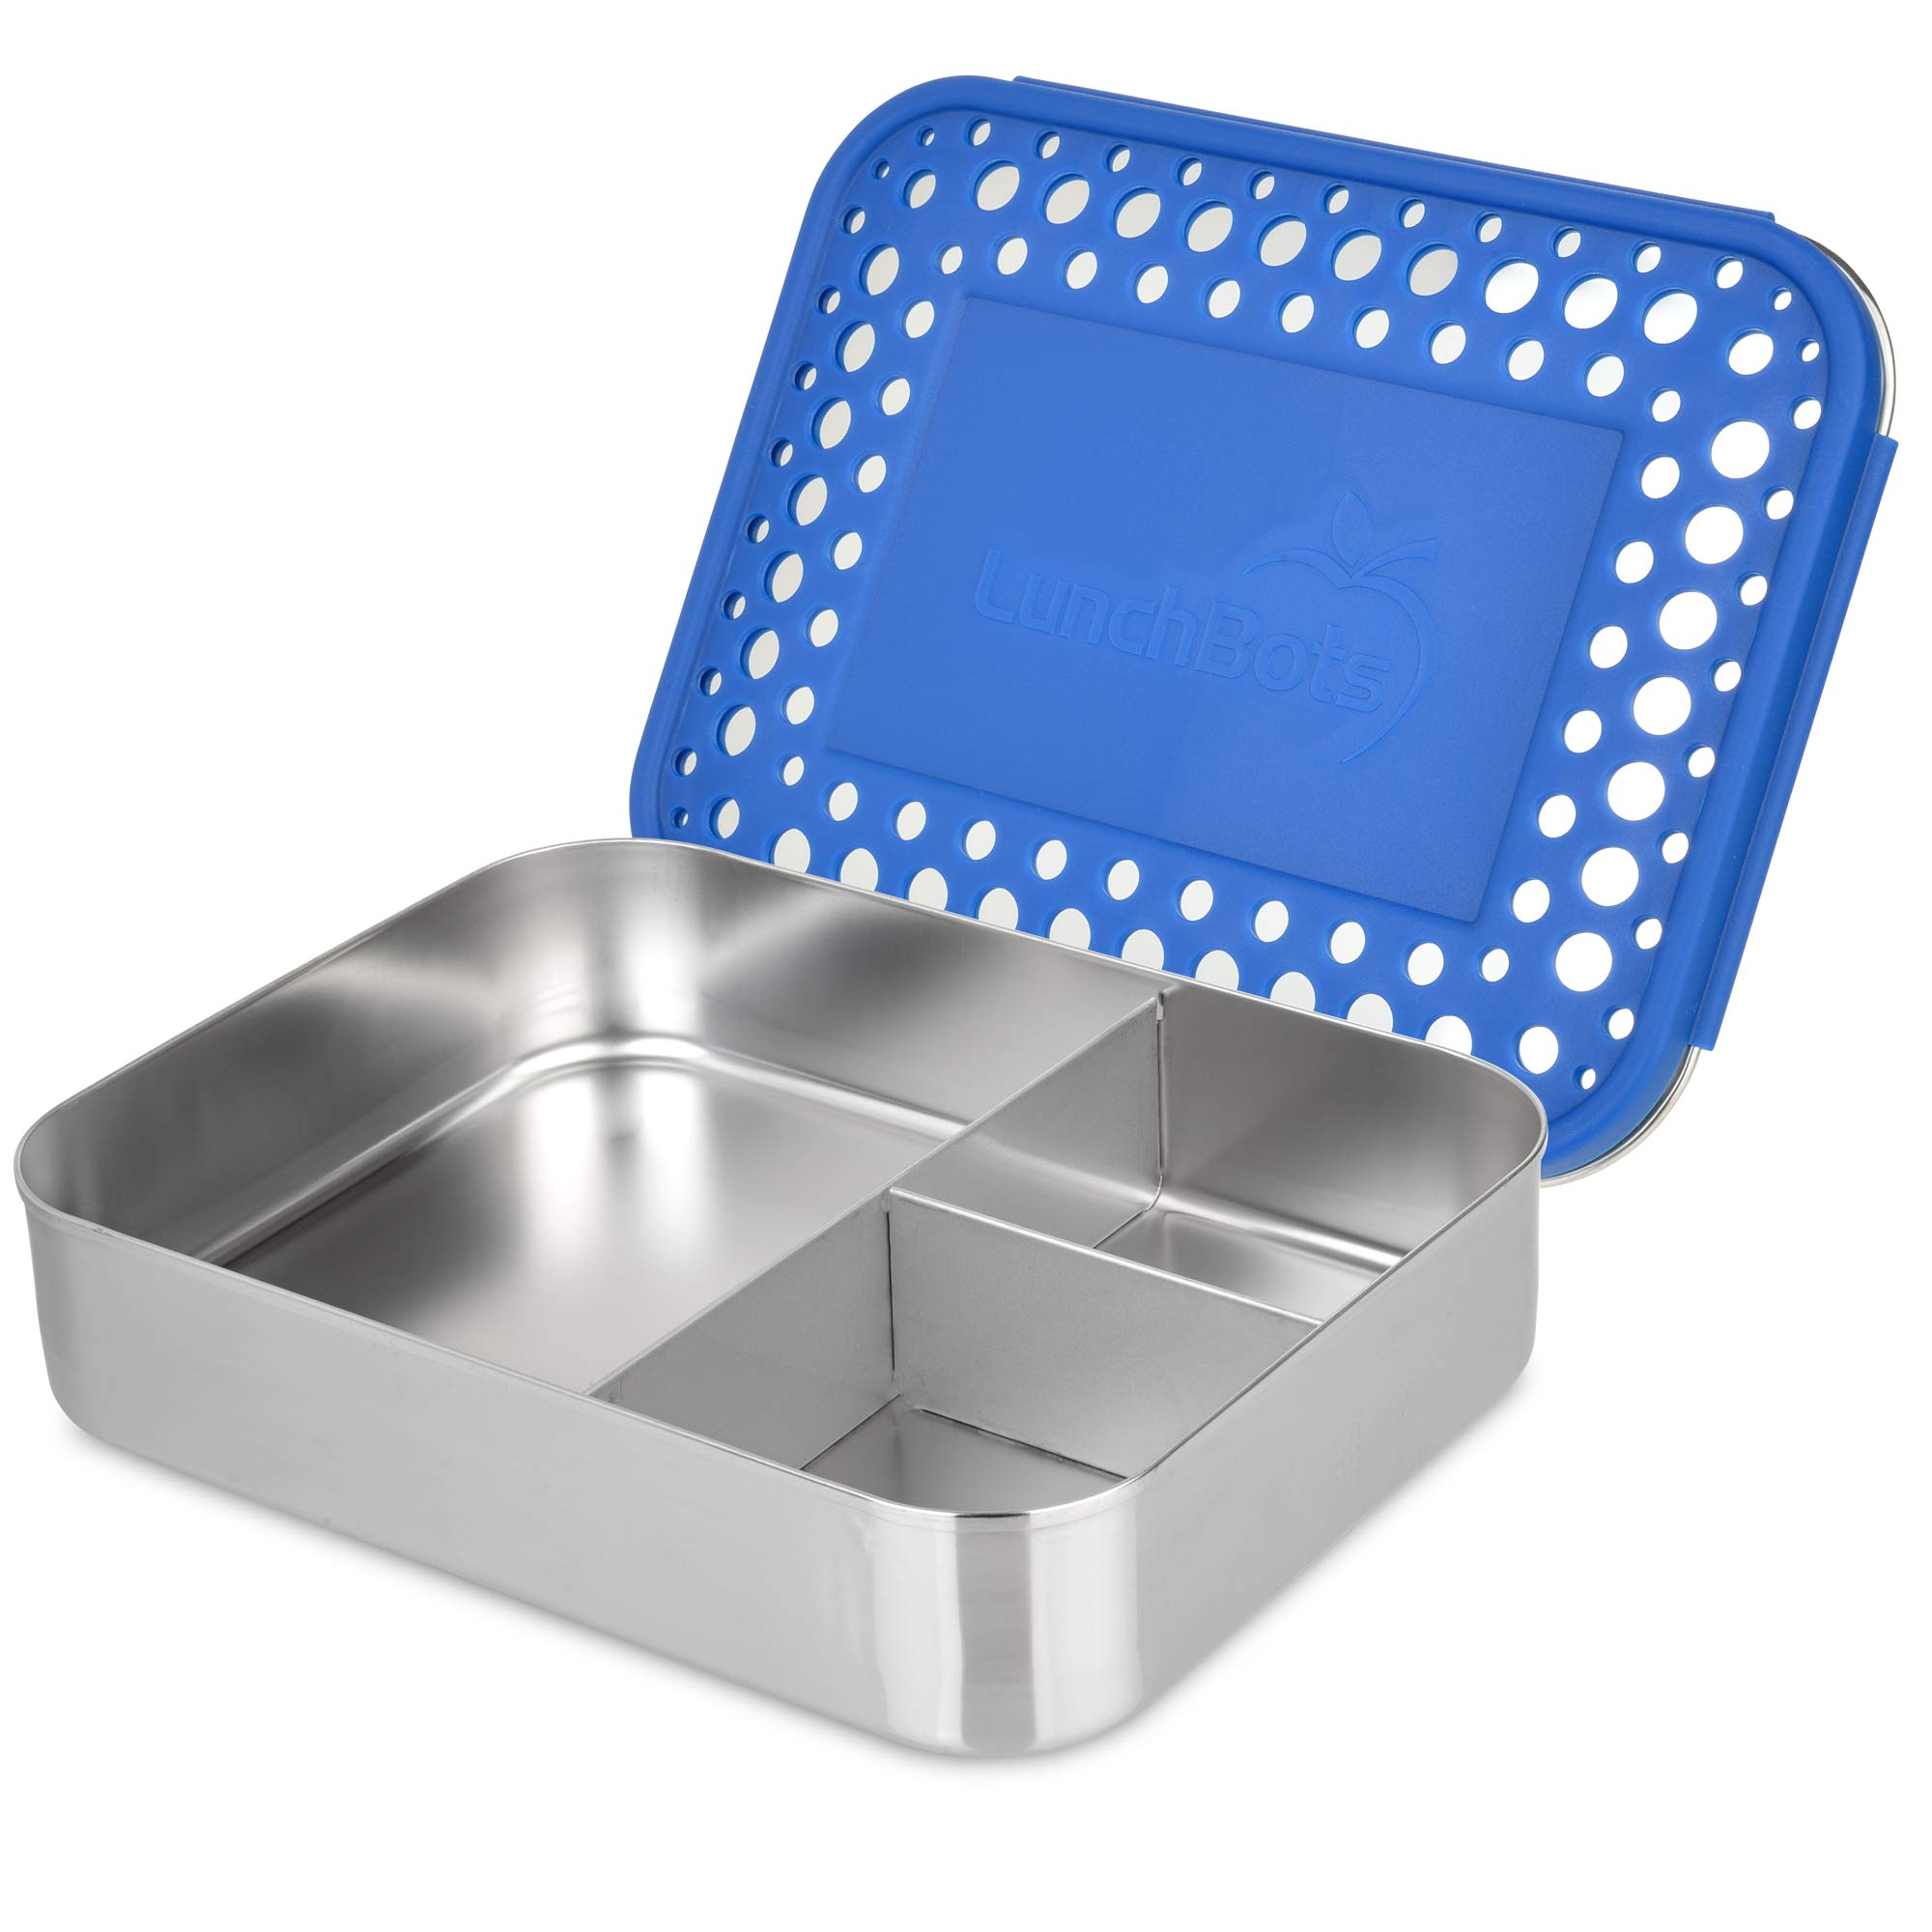 LunchBots Large Trio Stainless Steel Lunch Container -Three Section Design for Sandwich and Two Sides - Metal Bento Lunch Box for Kids or Adults - Eco-Friendly - Stainless Lid - Blue Dots